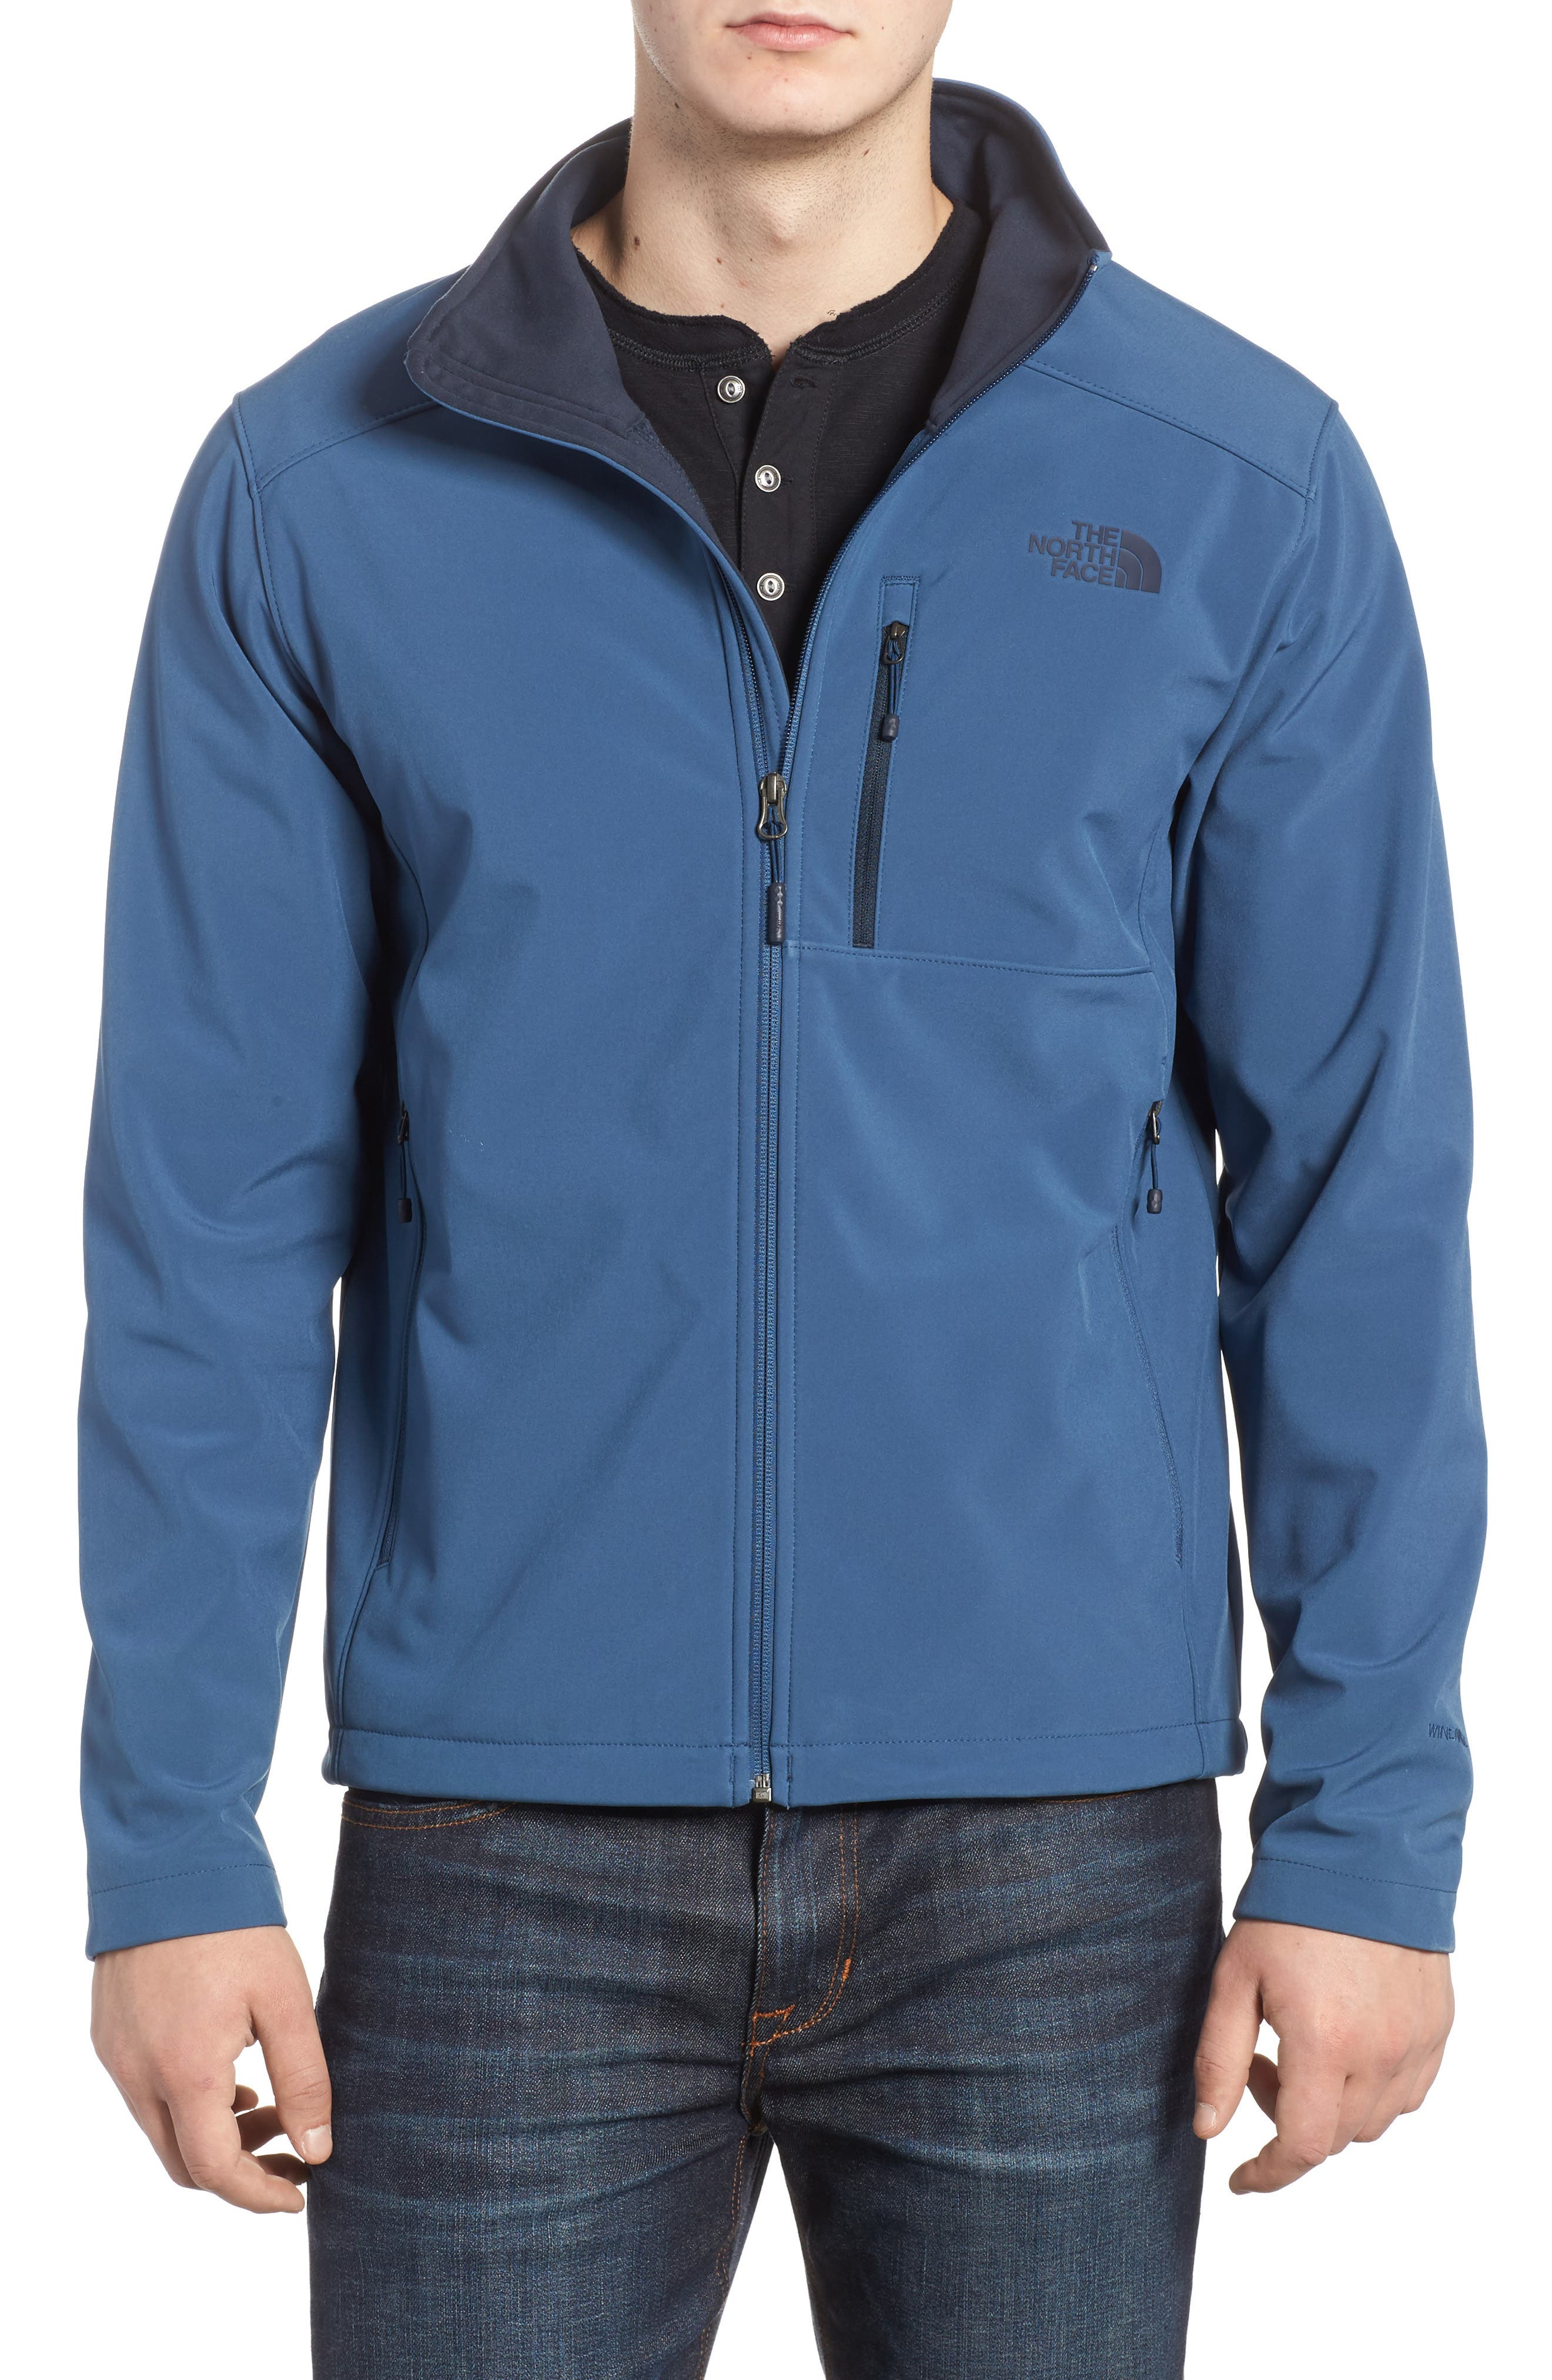 Main Image - The North Face 'Apex Bionic 2' Windproof & Water Resistant Soft Shell Jacket